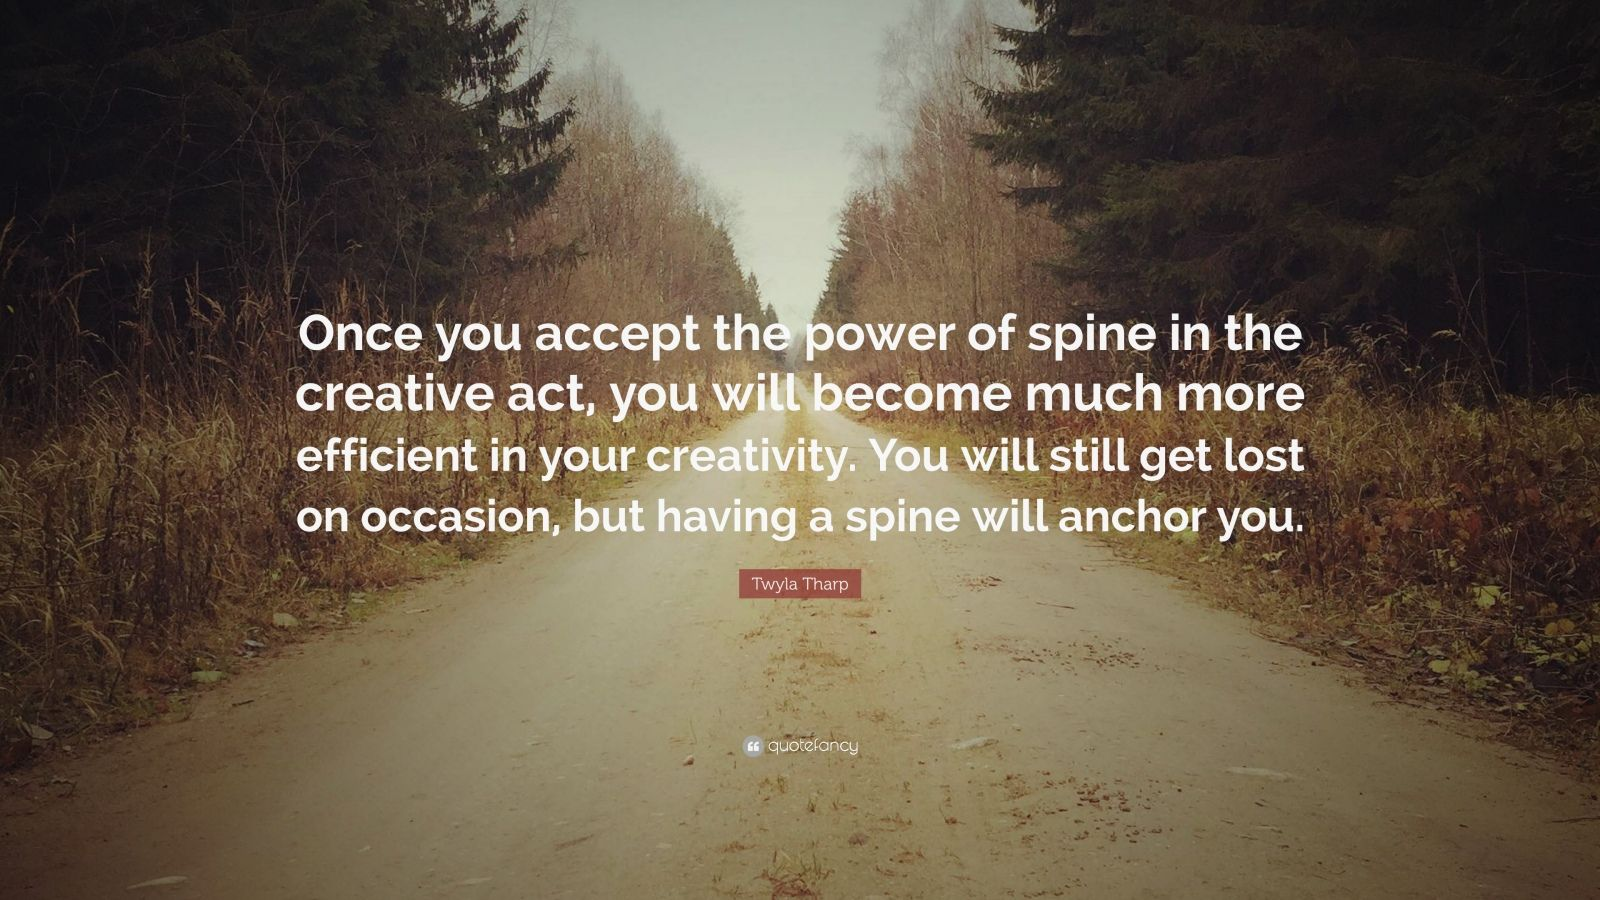 "Twyla Tharp Quote: ""Once you accept the power of spine in the creative act, you will become much more efficient in your creativity. You will still get lost on occasion, but having a spine will anchor you."""